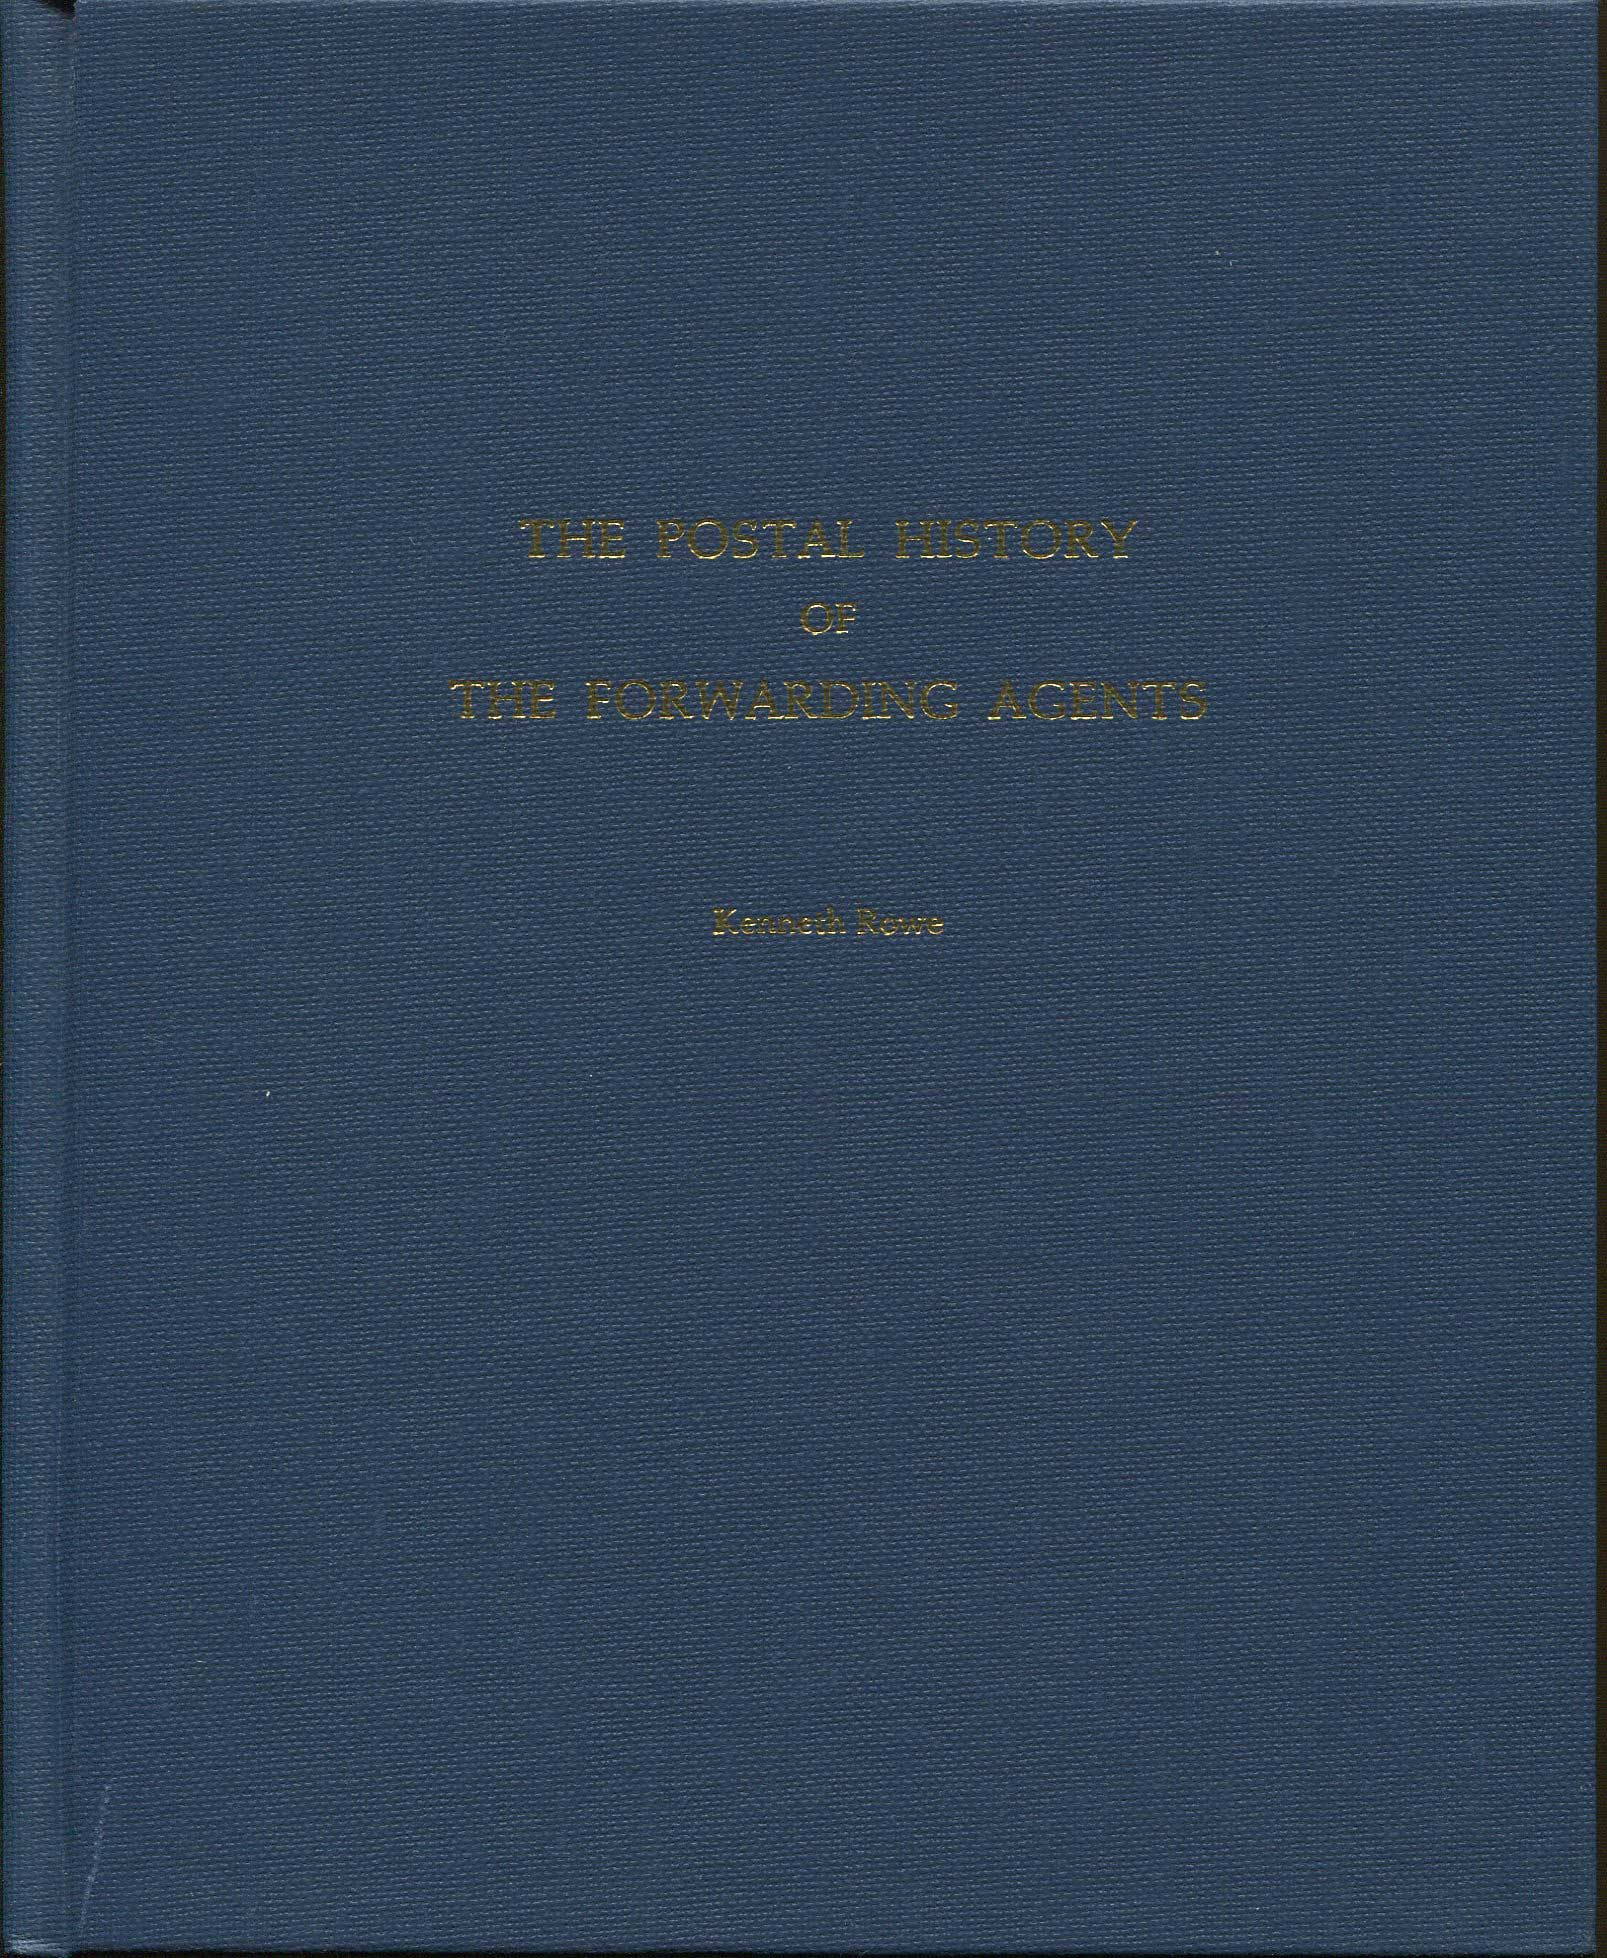 ROWE Kenneth The postal history of the forwarding agents.